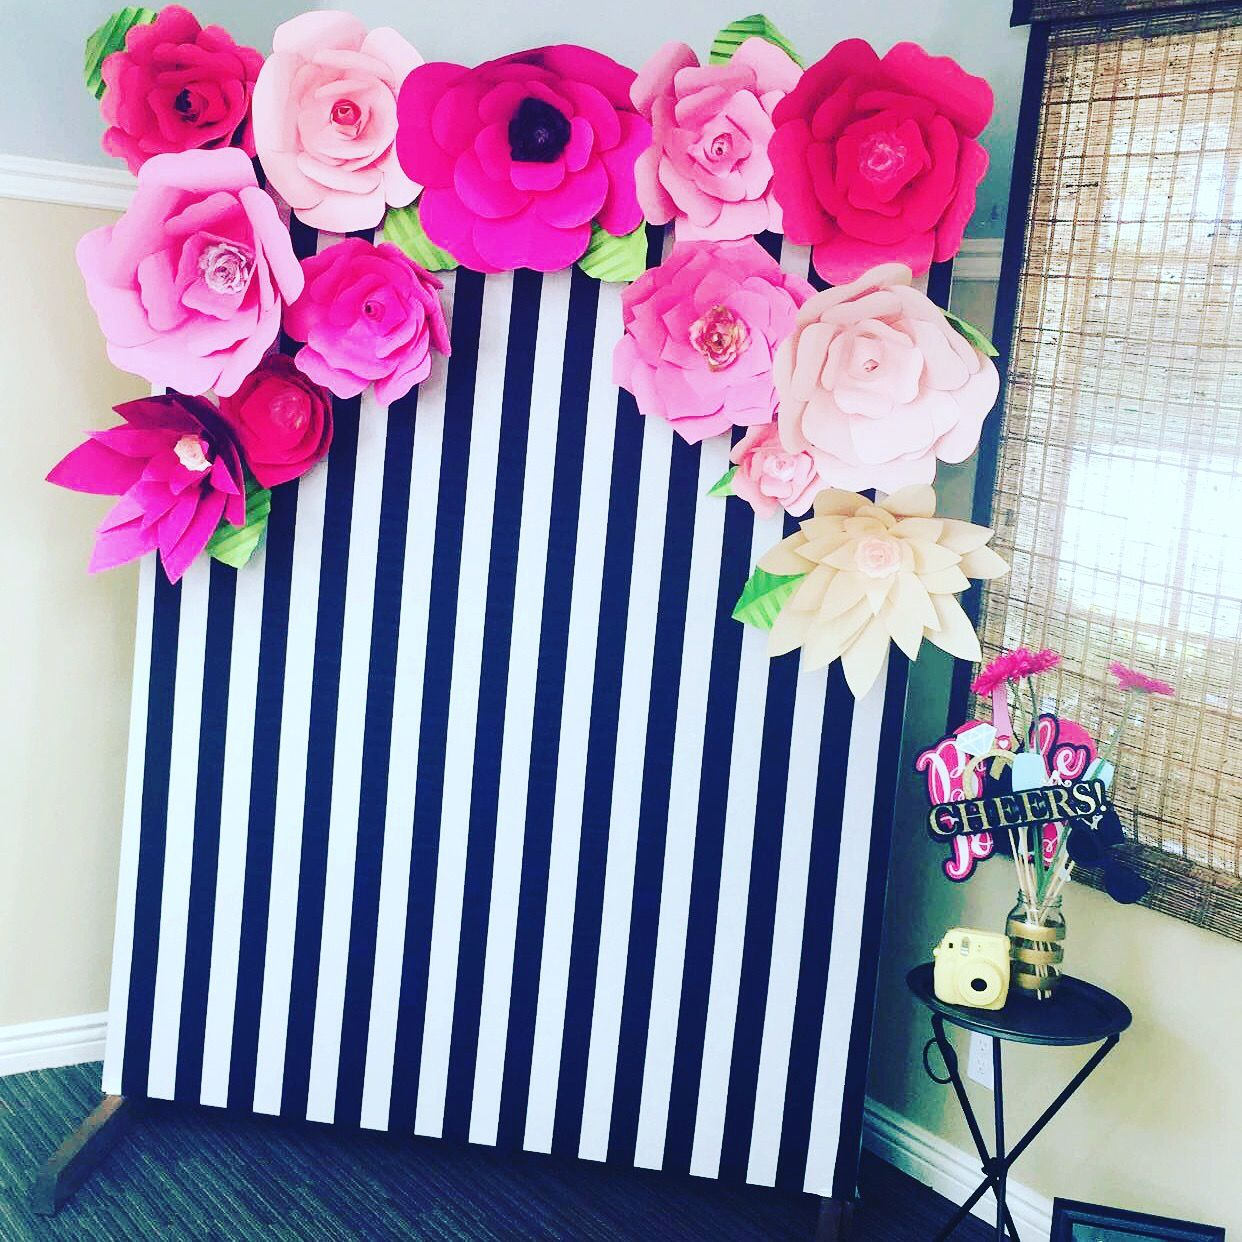 Kate spade picture backdrop 30 pinterest picture backdrops kate spade picture backdrop izmirmasajfo